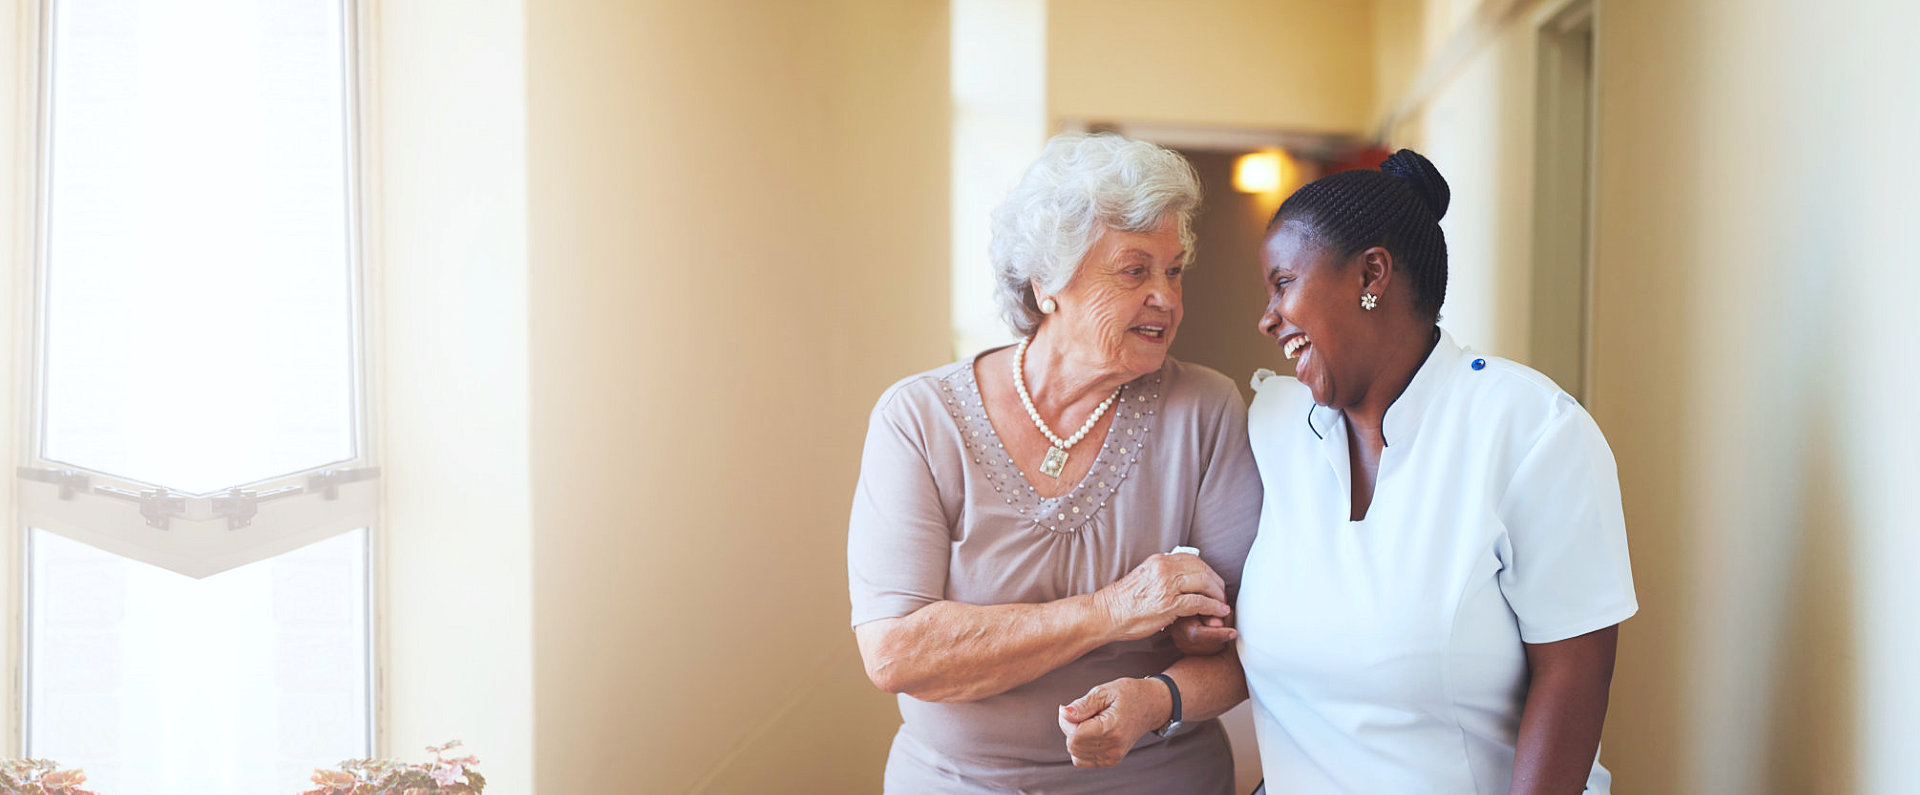 elder woman and her caregiver talking